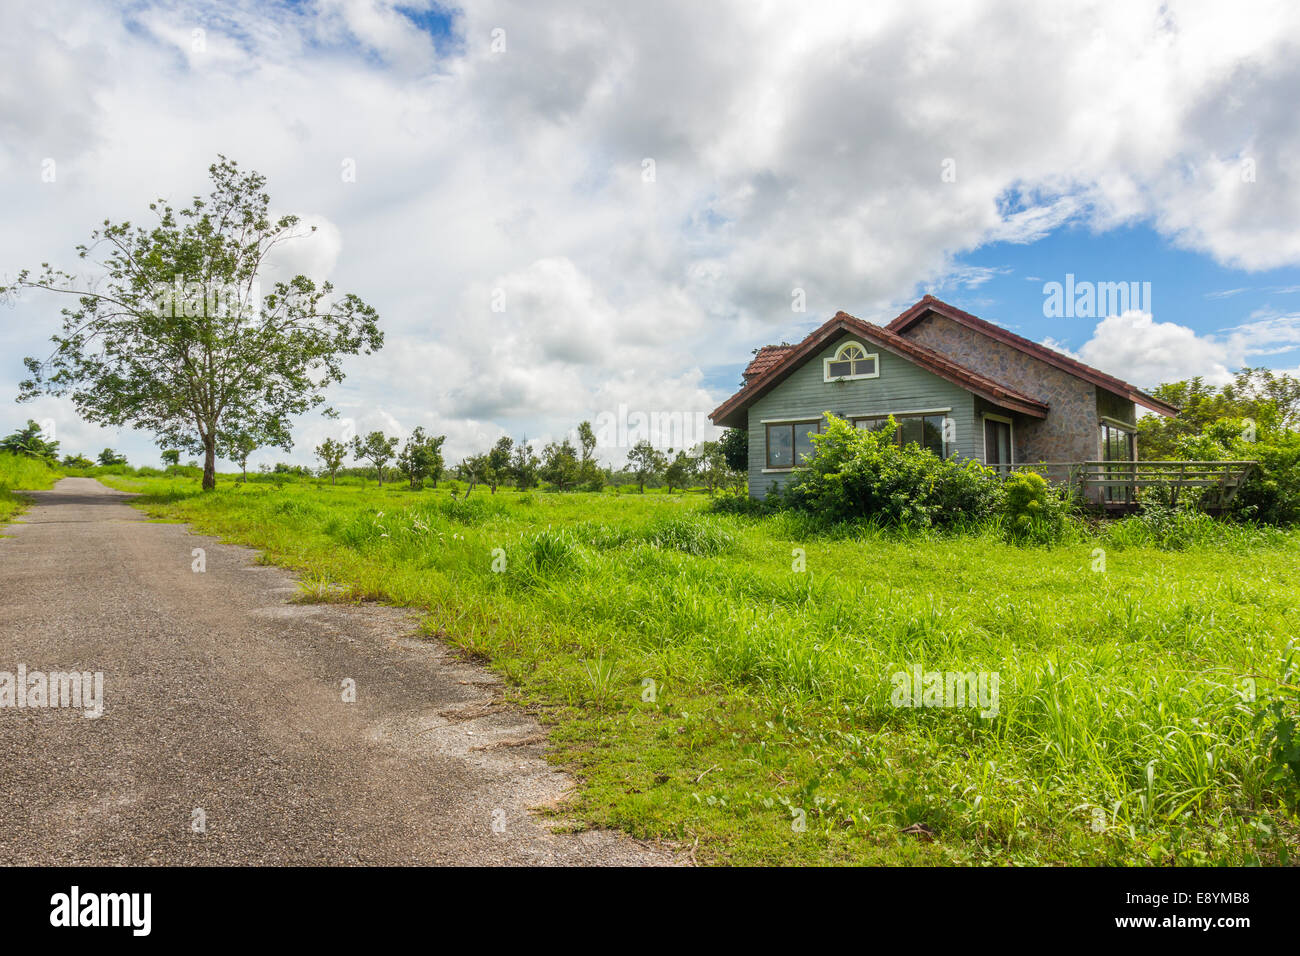 the abandon house - Stock Image